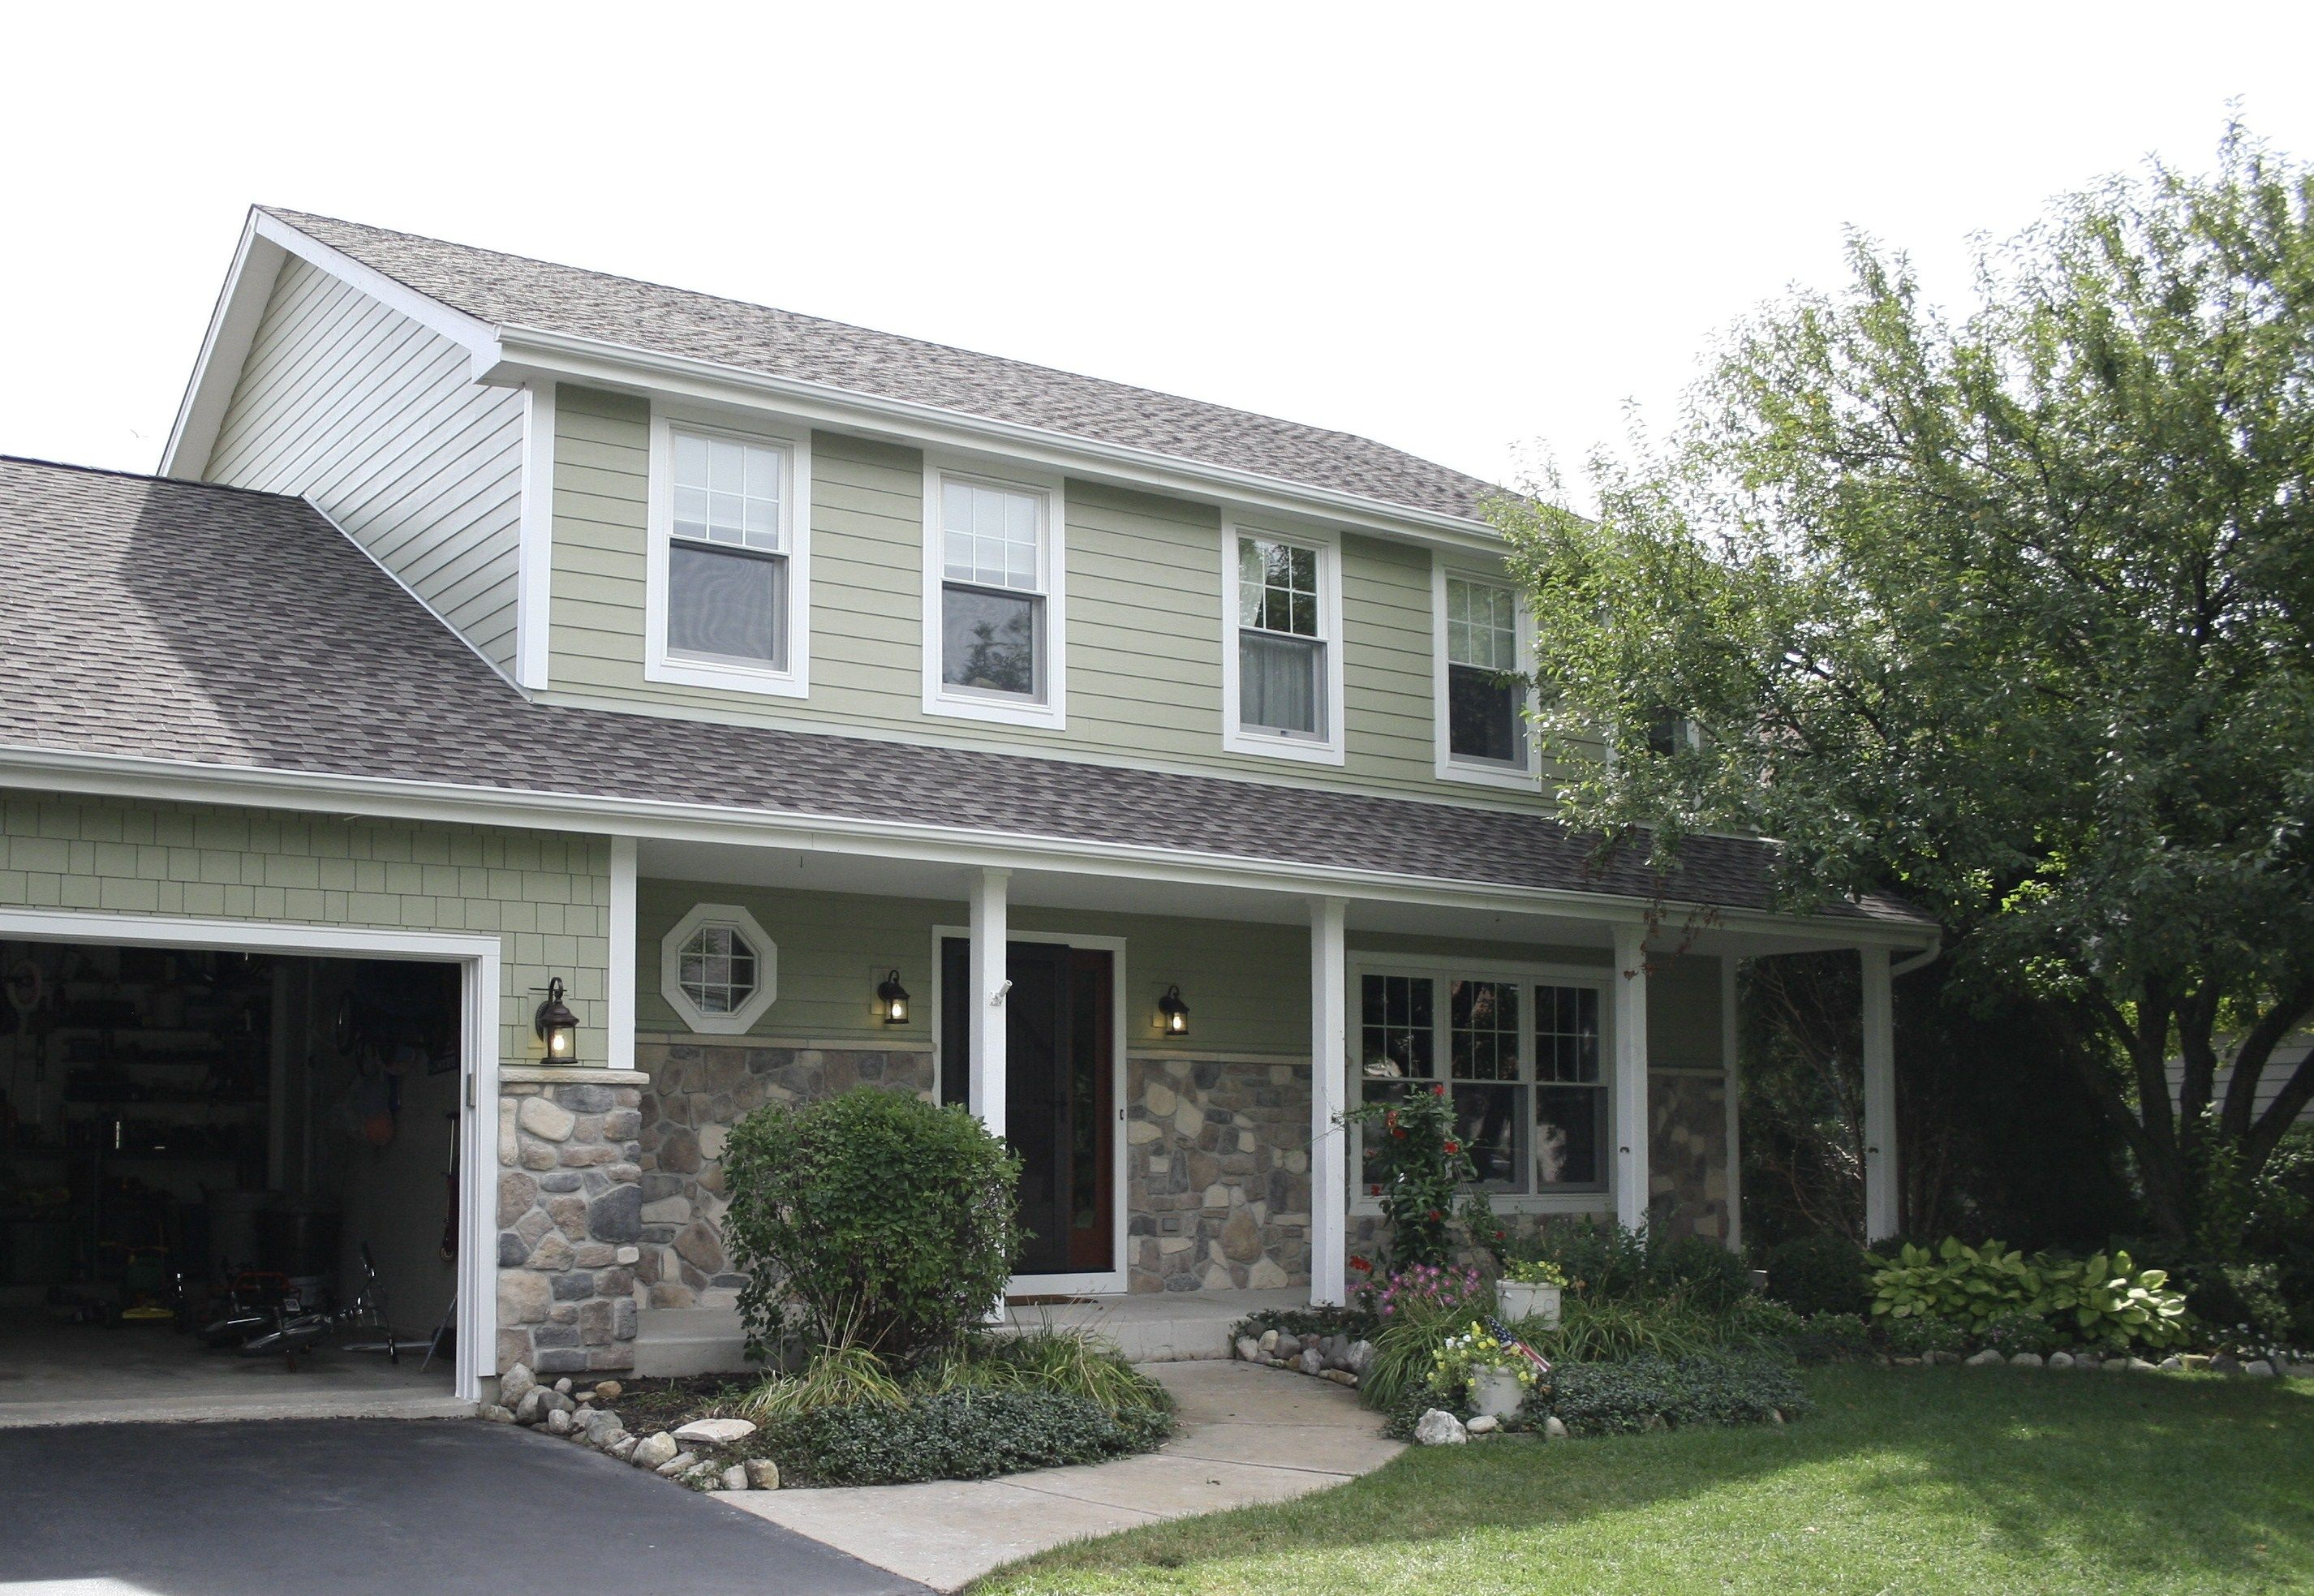 Pin By Opal Enteprises Inc On Ideas For The House In 2020 Hardie Siding Exterior House Renovation James Hardie Siding